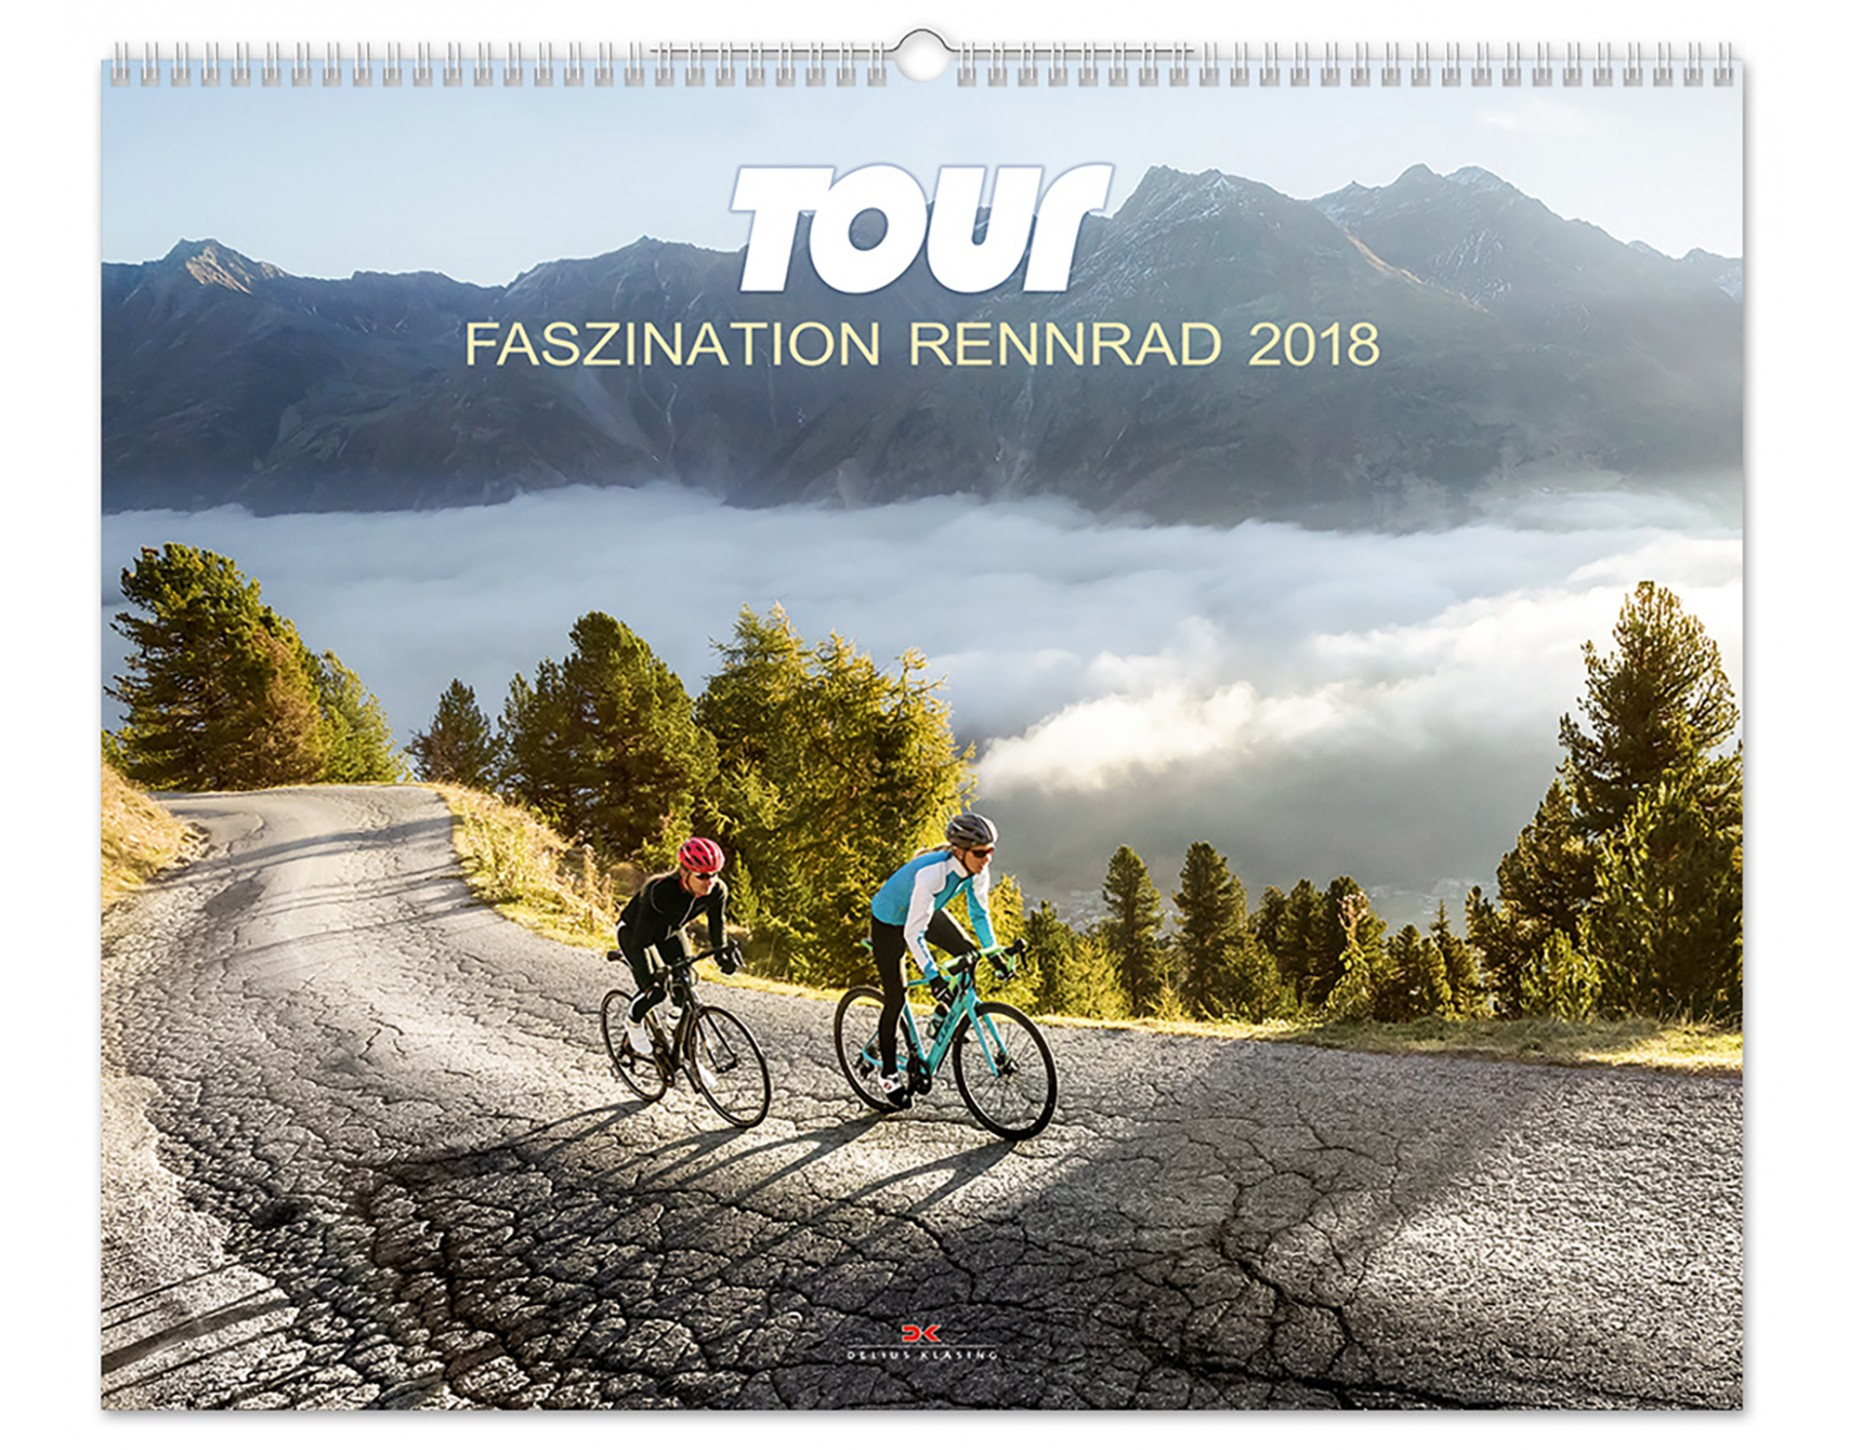 delius klasing tour road bike fascination 2018 calendar everything you need rose bikes. Black Bedroom Furniture Sets. Home Design Ideas